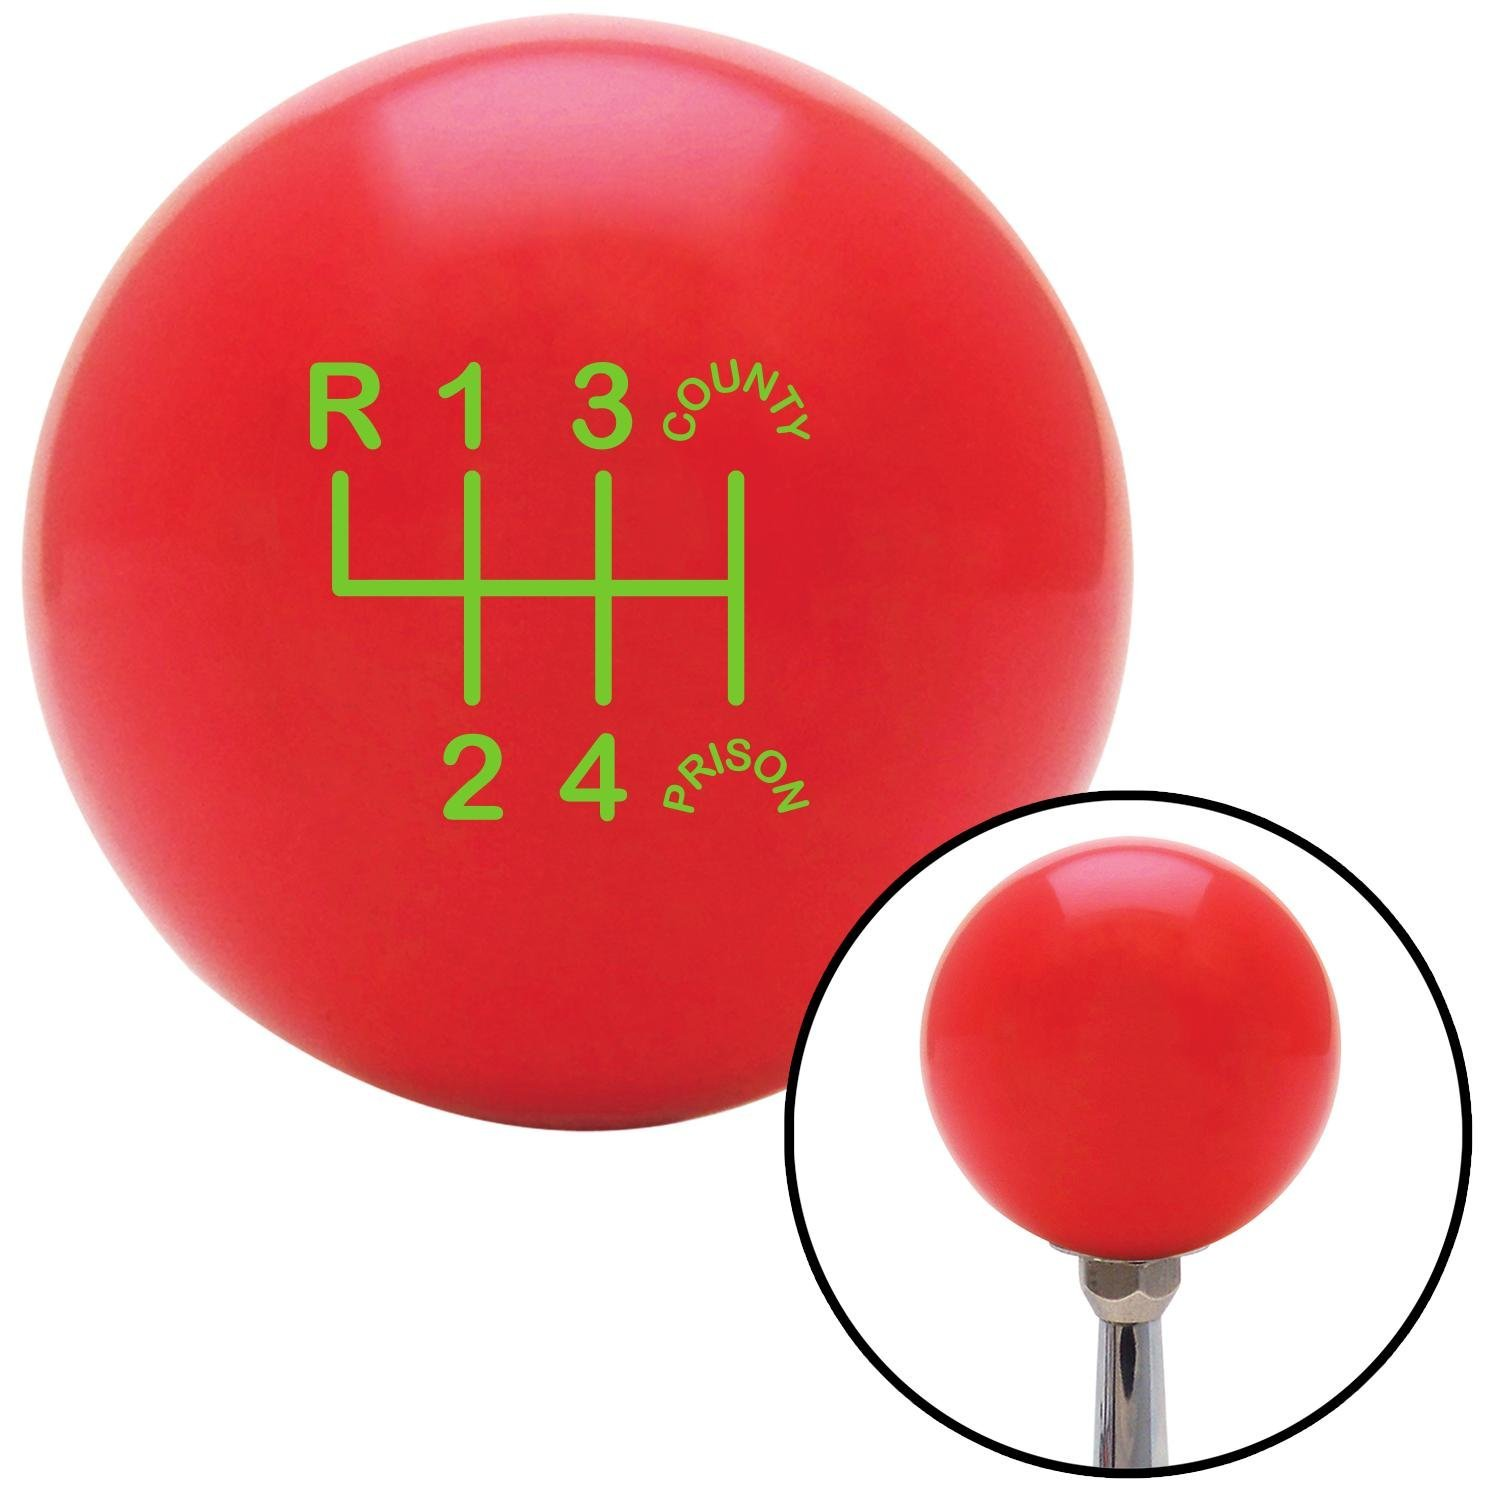 American Shifter 100494 Red Shift Knob with M16 x 1.5 Insert Green Shift Pattern CP20n